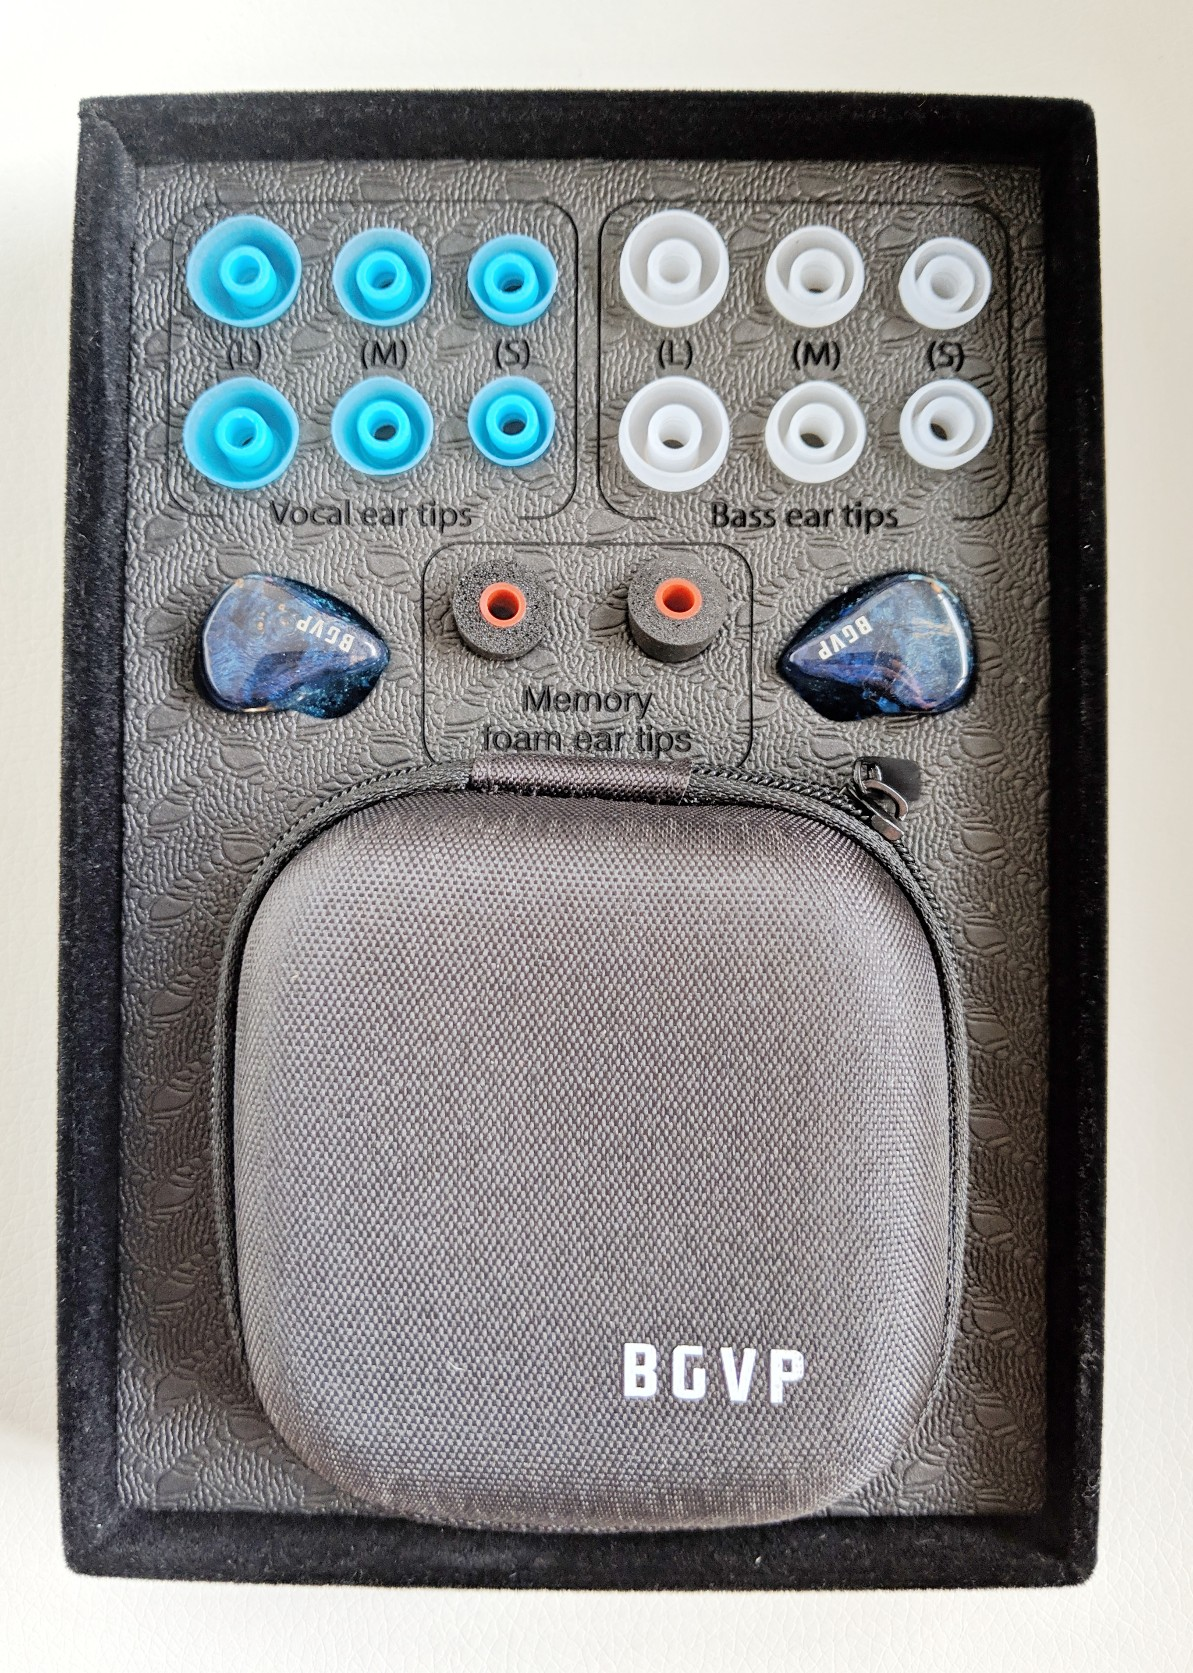 BGVP DH3 Accessories - Eartips and case